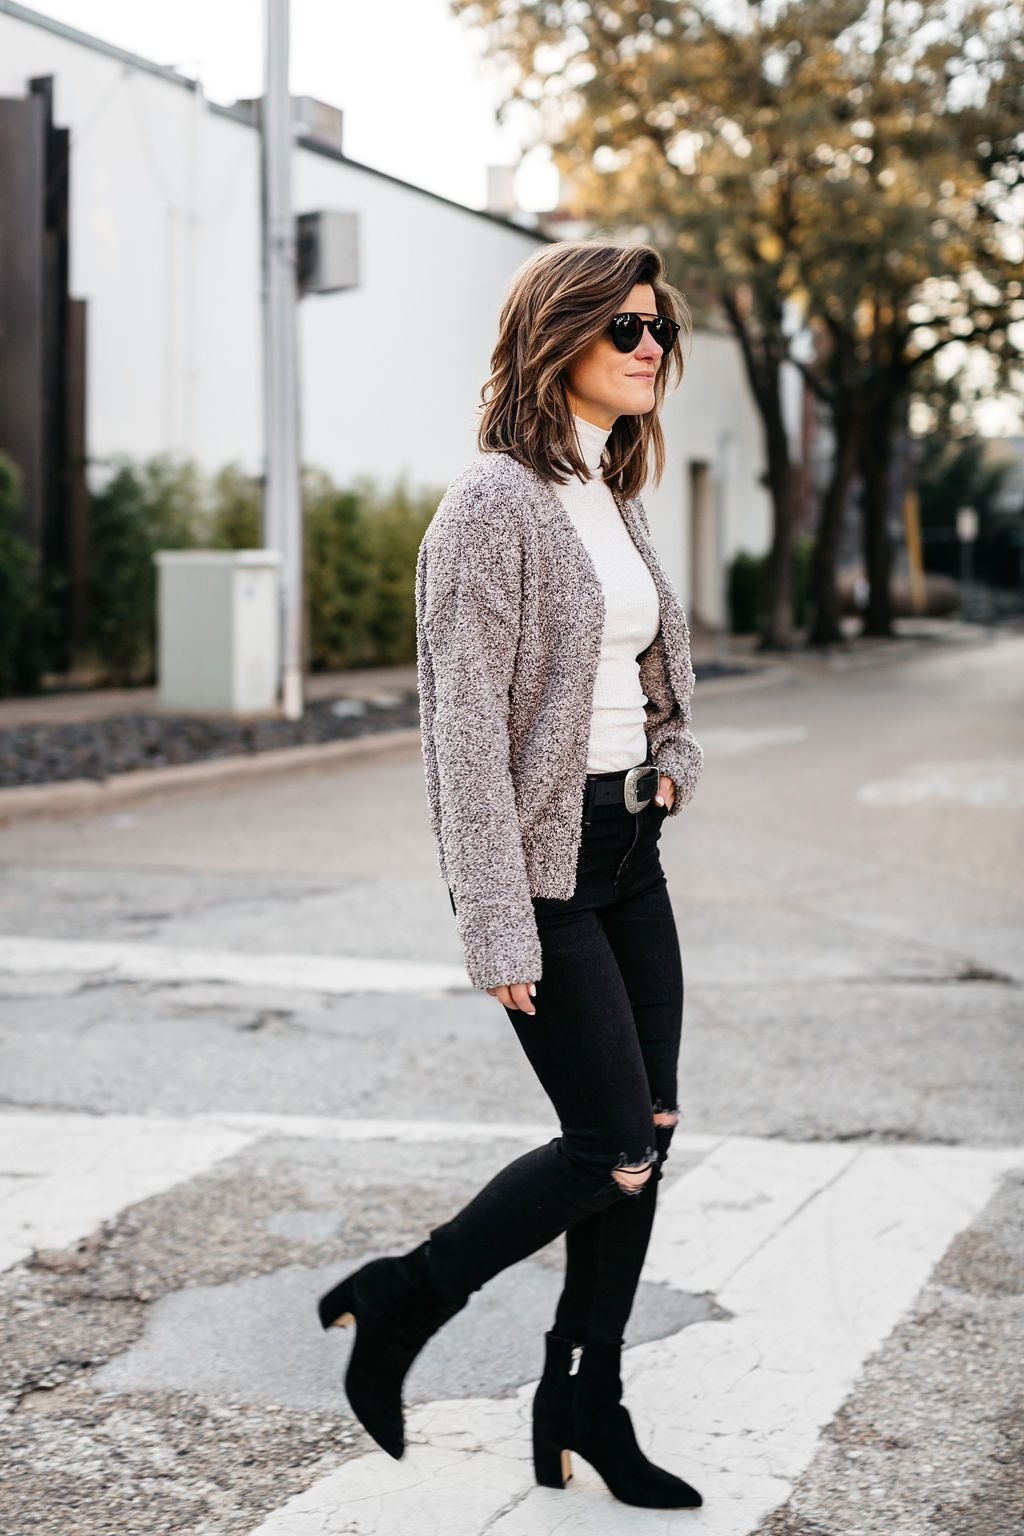 How To Style A Quick Winter Date Night Look Brightontheday Winter Outfits Night Out Outfit Winter Date Night Outfits [ 1536 x 1024 Pixel ]